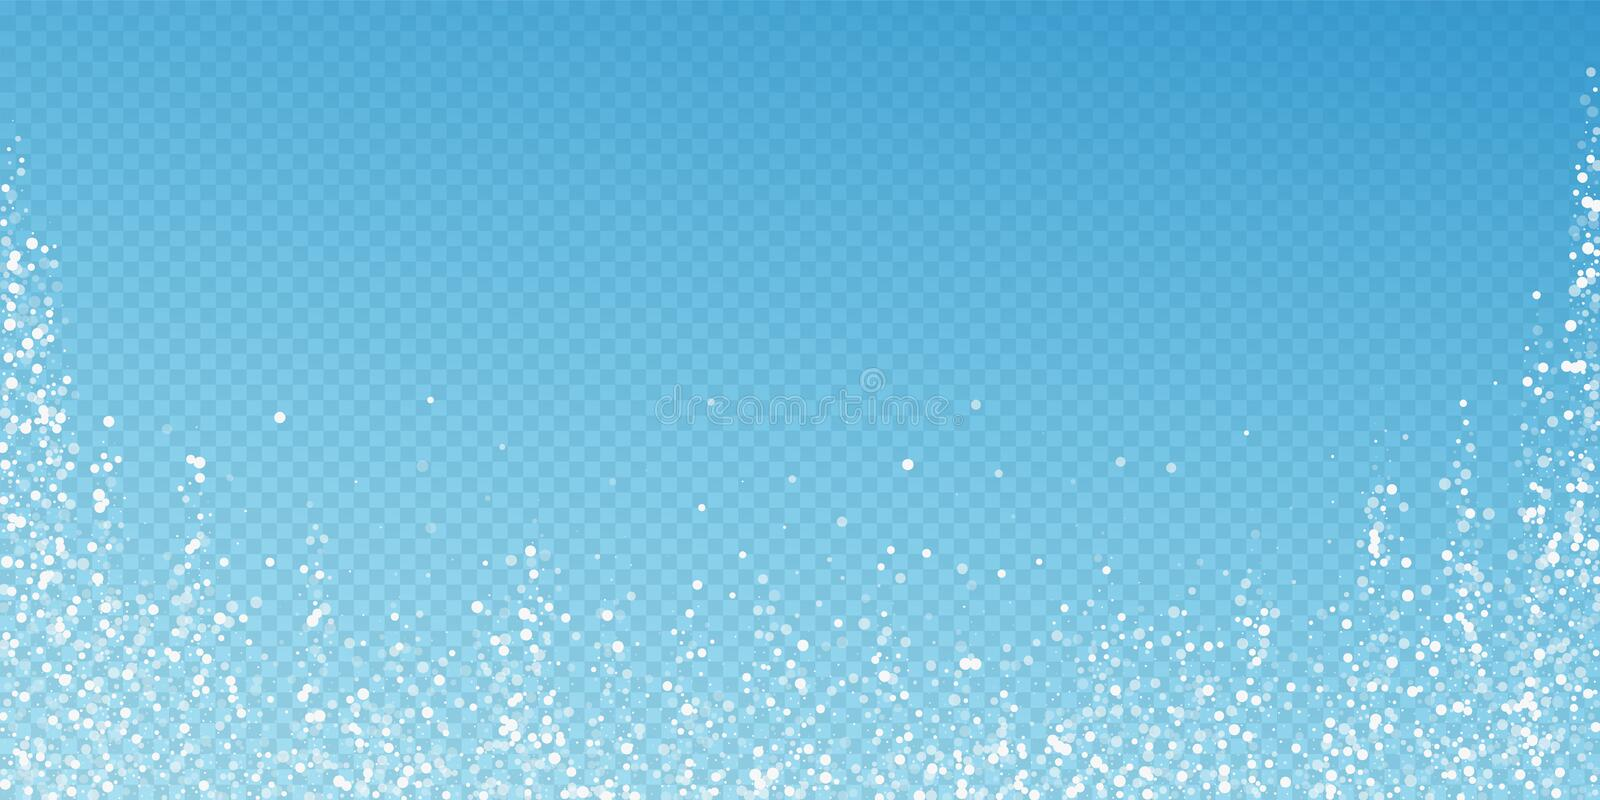 Random white dots Christmas background. Subtle fly. Ing snow flakes and stars on blue transparent background. Authentic winter silver snowflake overlay template stock illustration